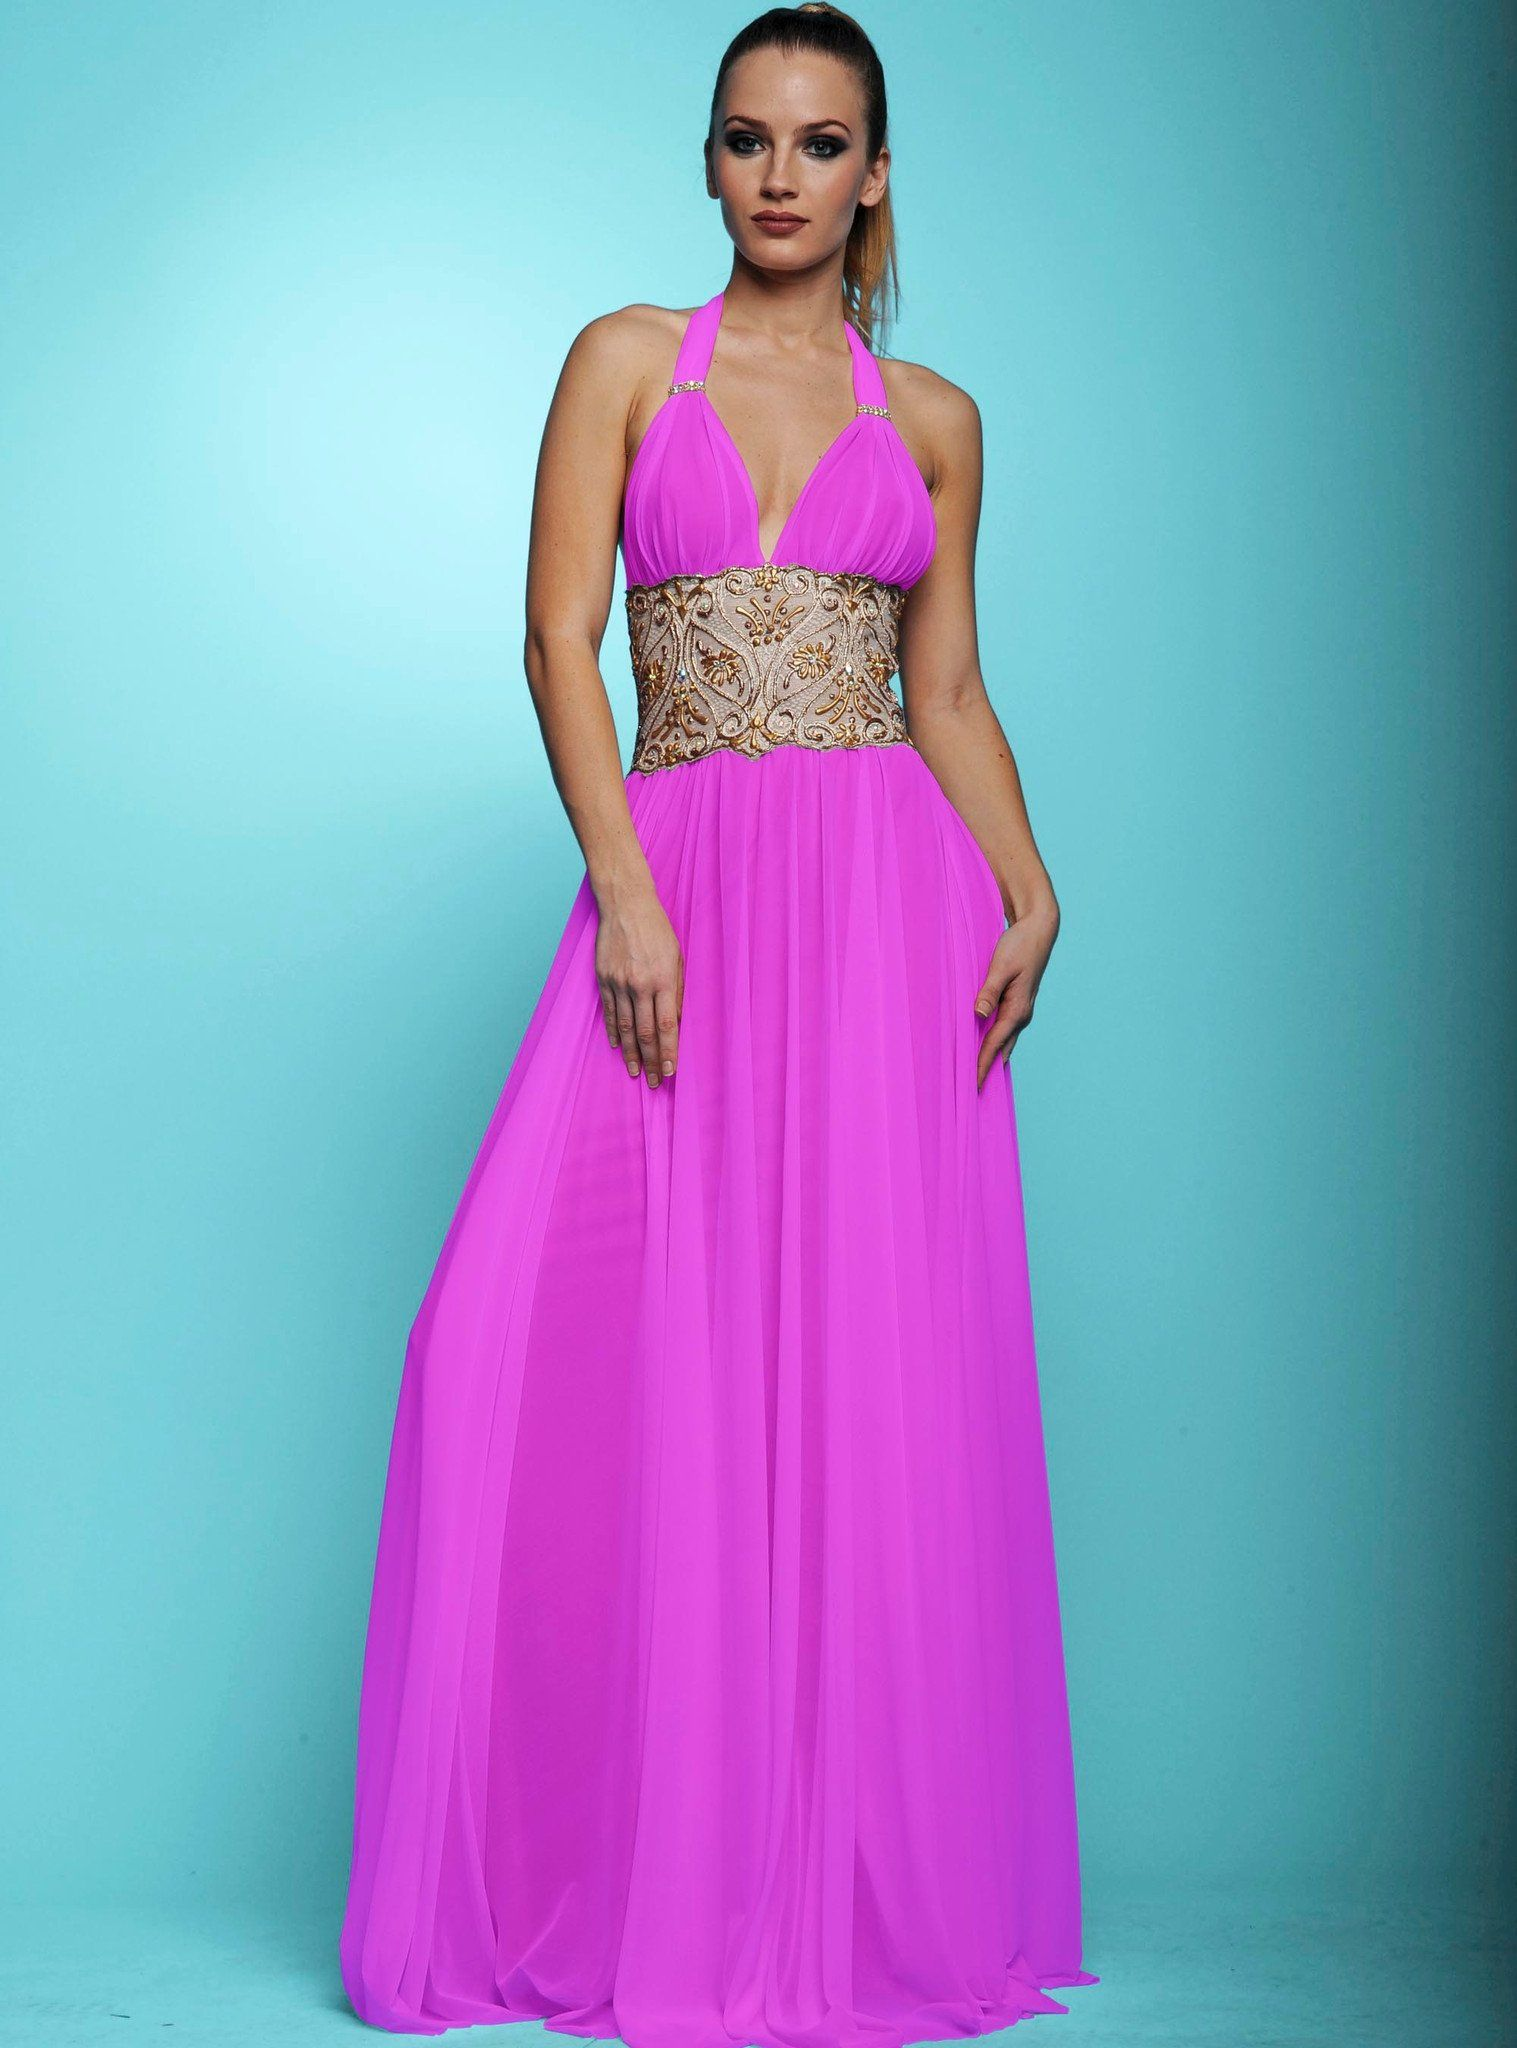 Karen Pink Mesh Painted Baccio Couture Long Dress | Products